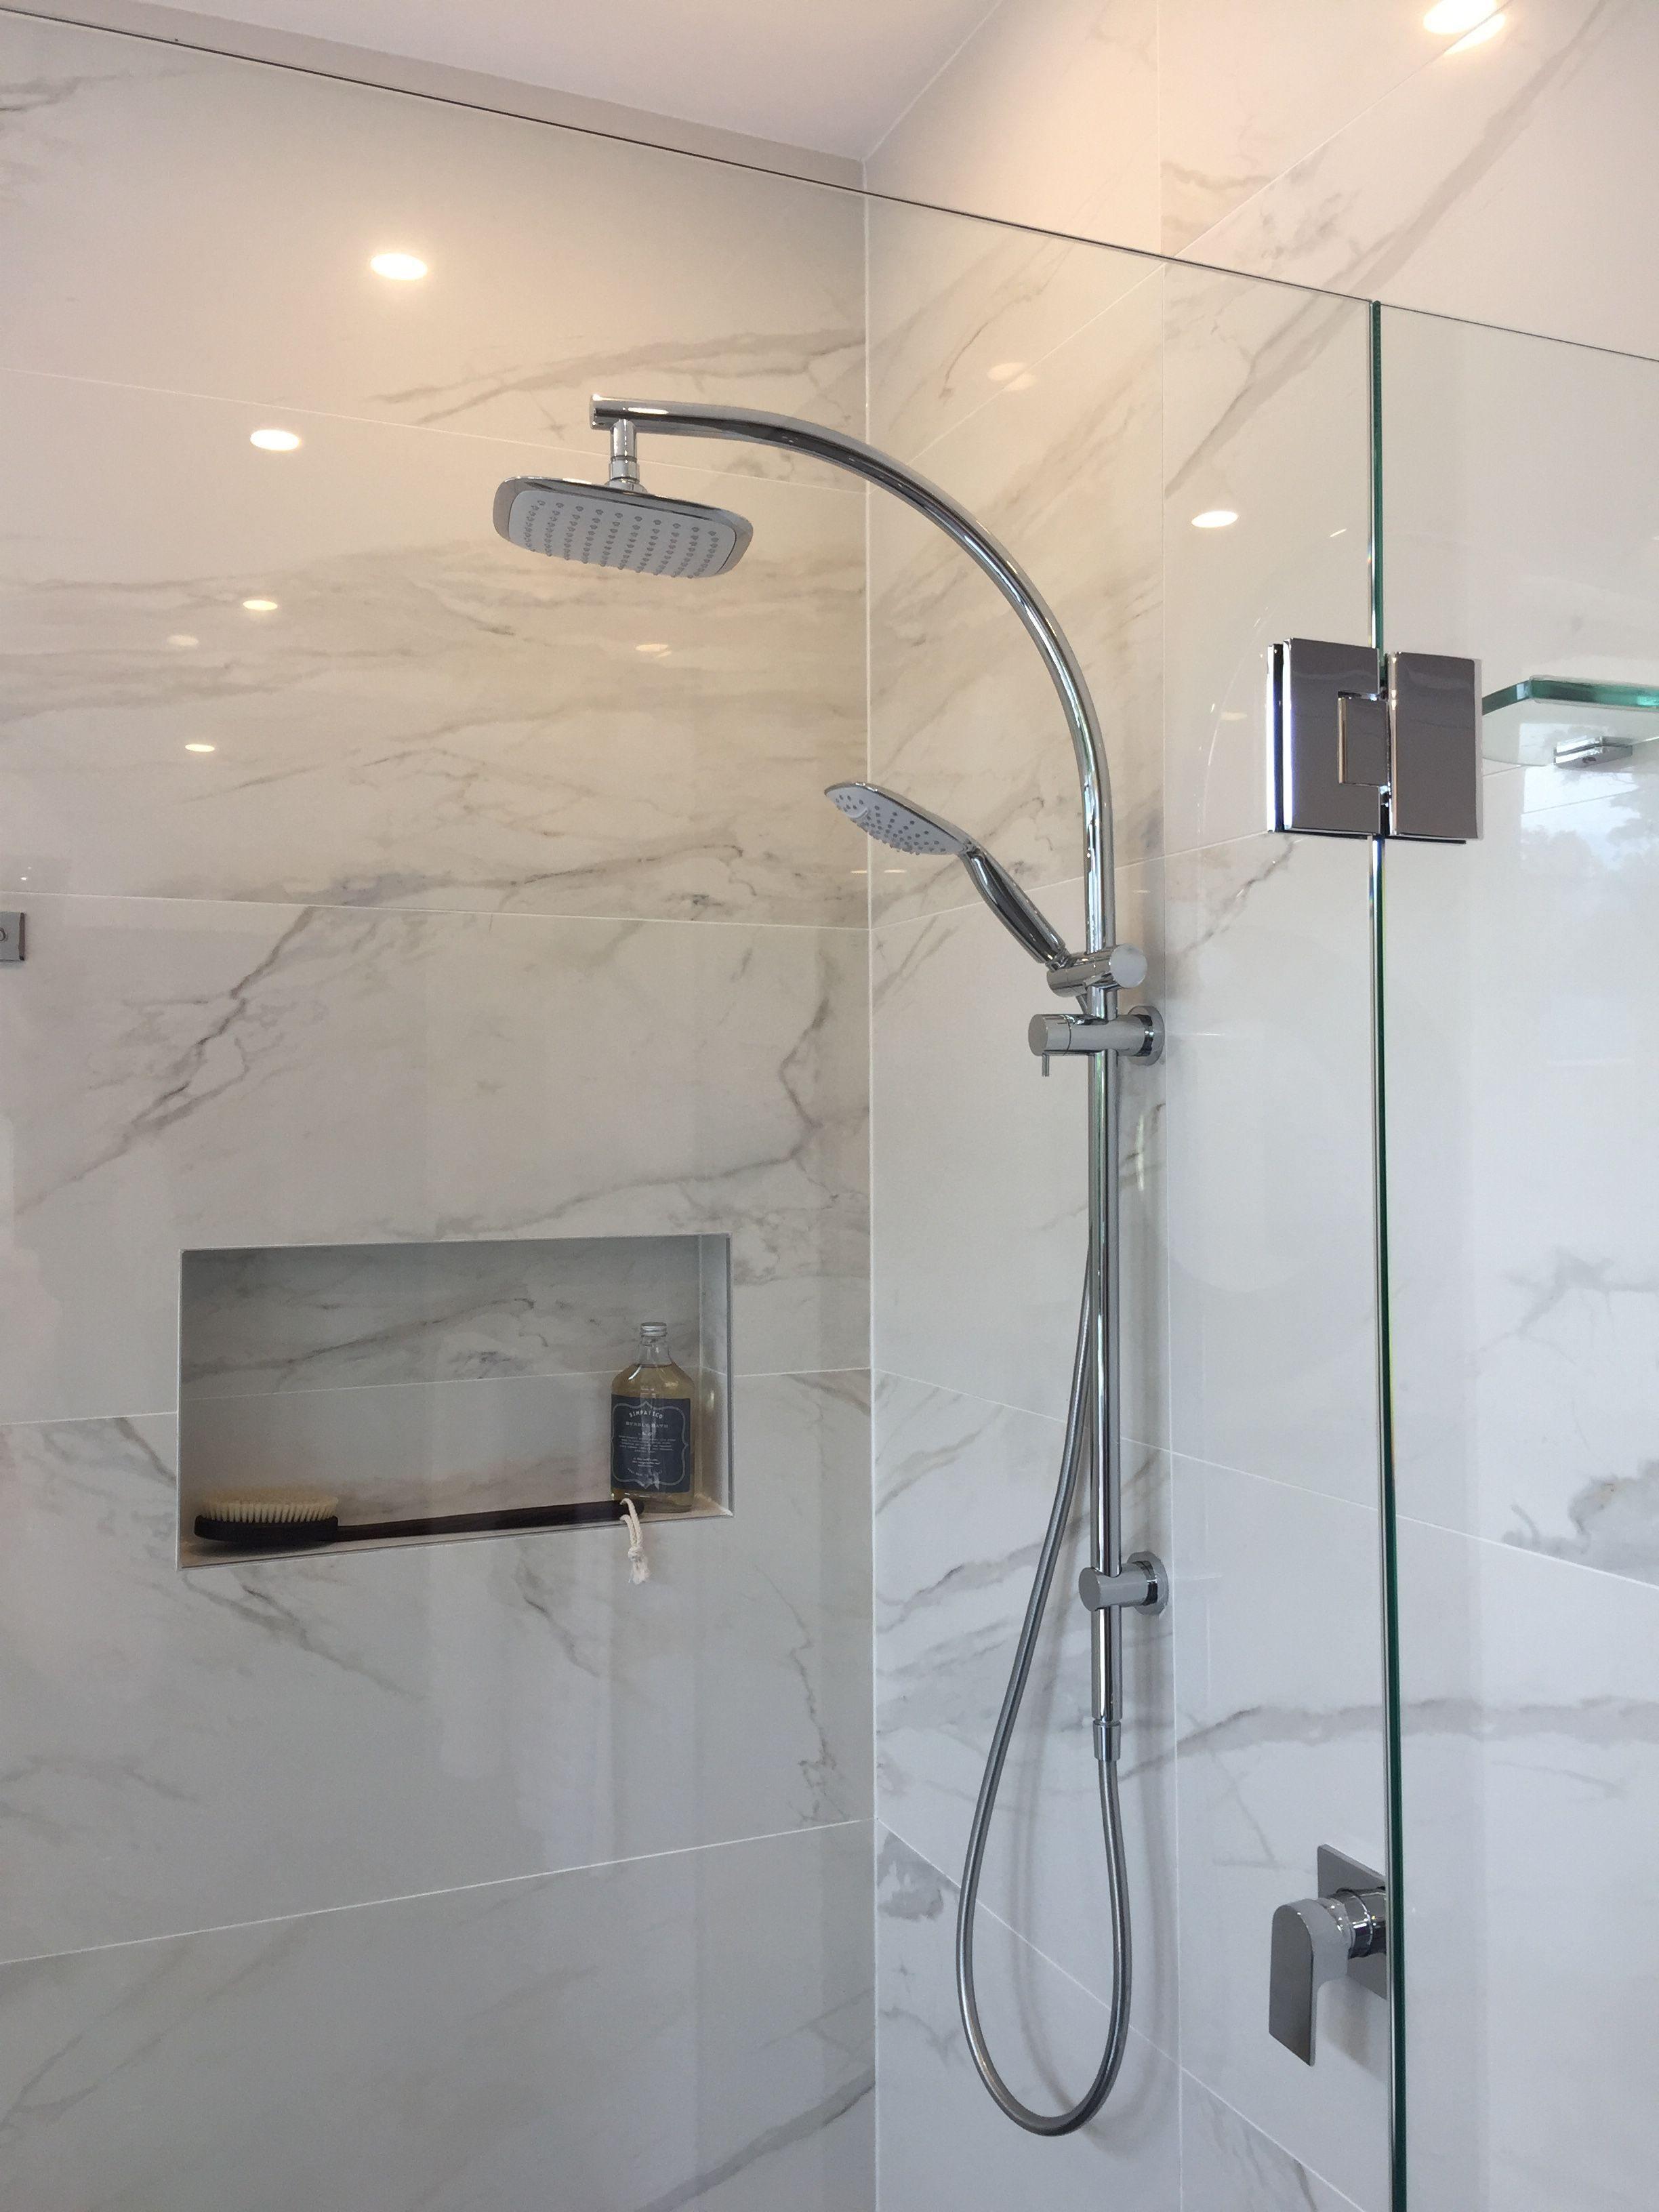 Pin By Lynda Funke On Shower Room Pinterest And House Electrical Wiring Behind Wall Find This More Custerlane